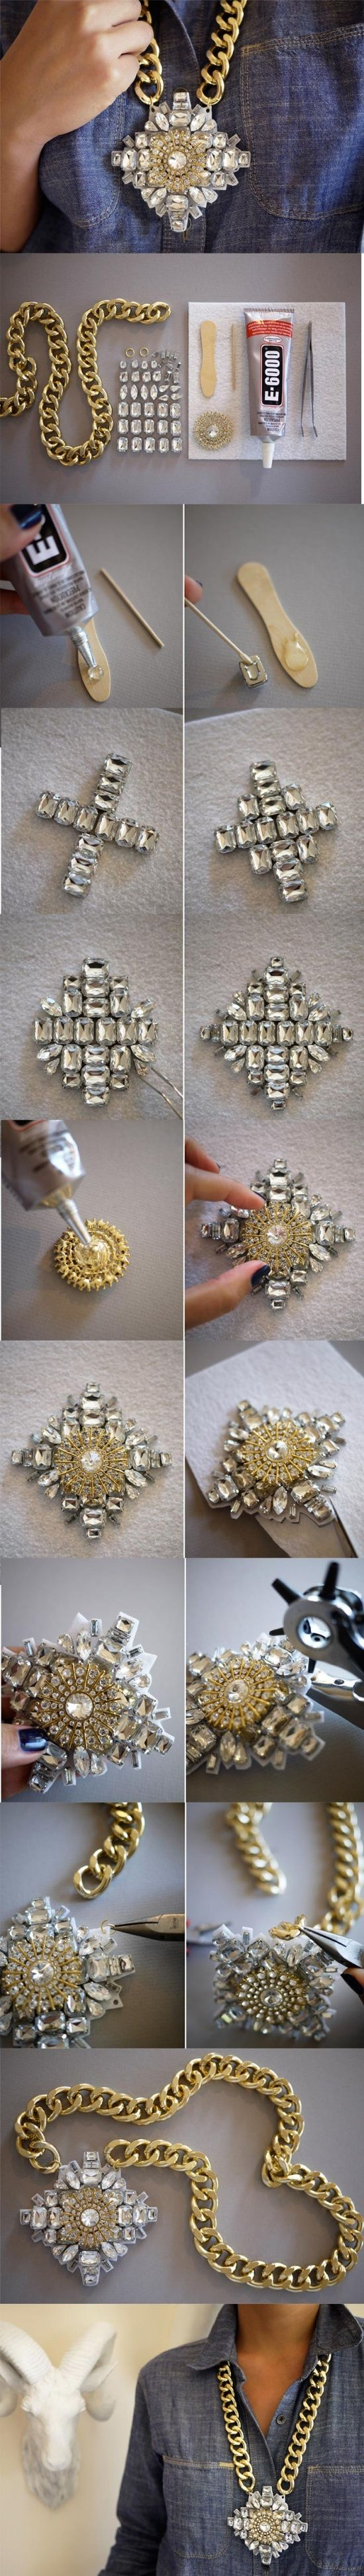 Might be a great way to have a beautiful belt/sash on your wedding dress and not pay a fortune for it!